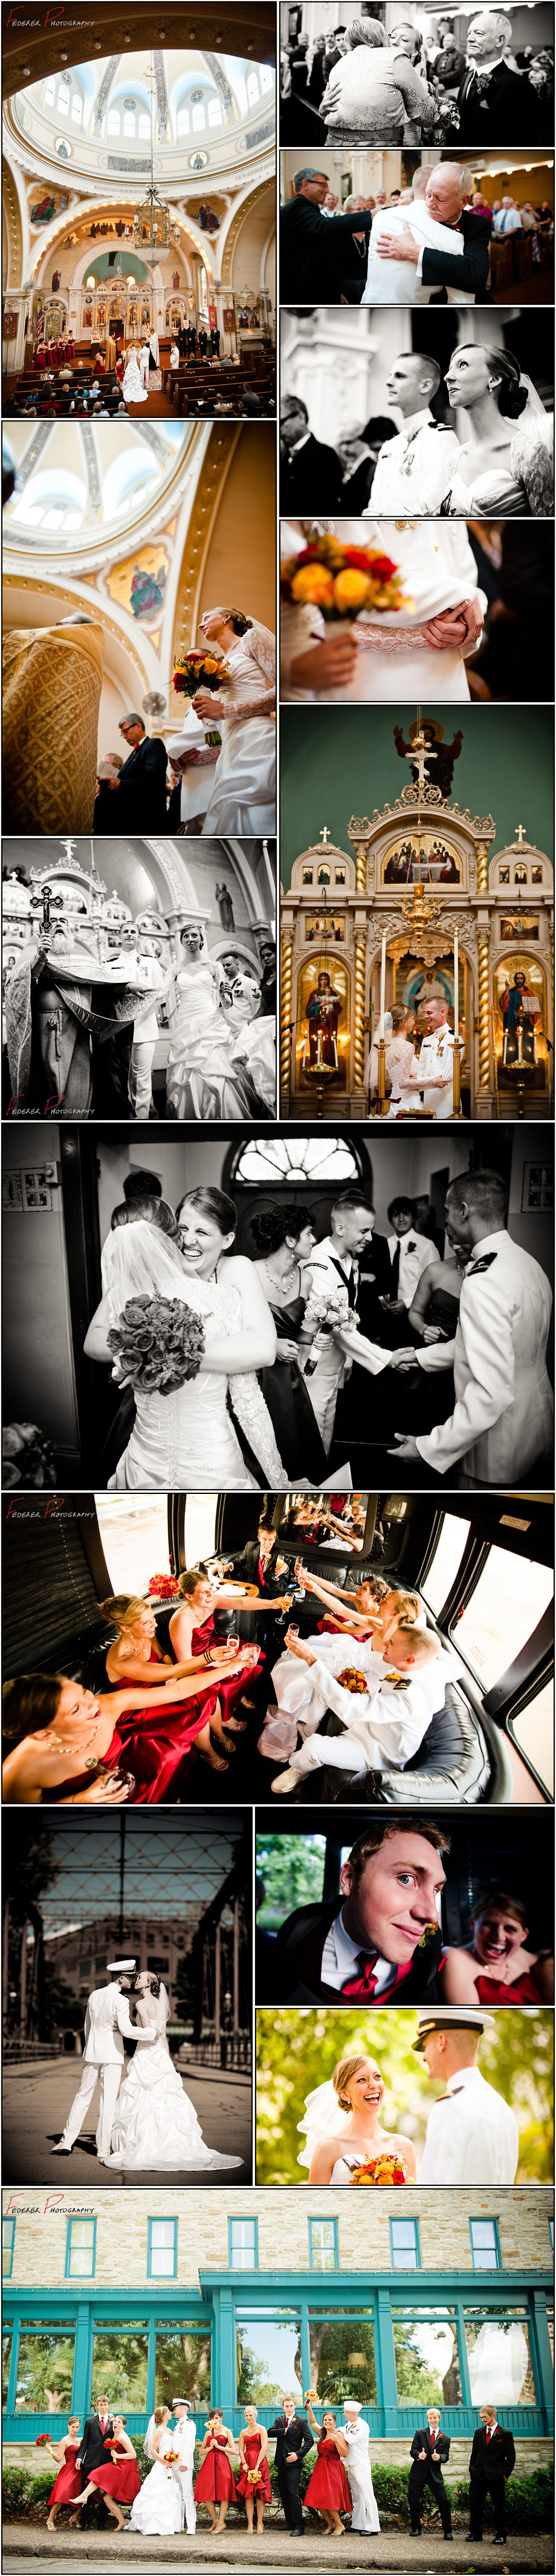 Professional Wedding Photographers Photographs